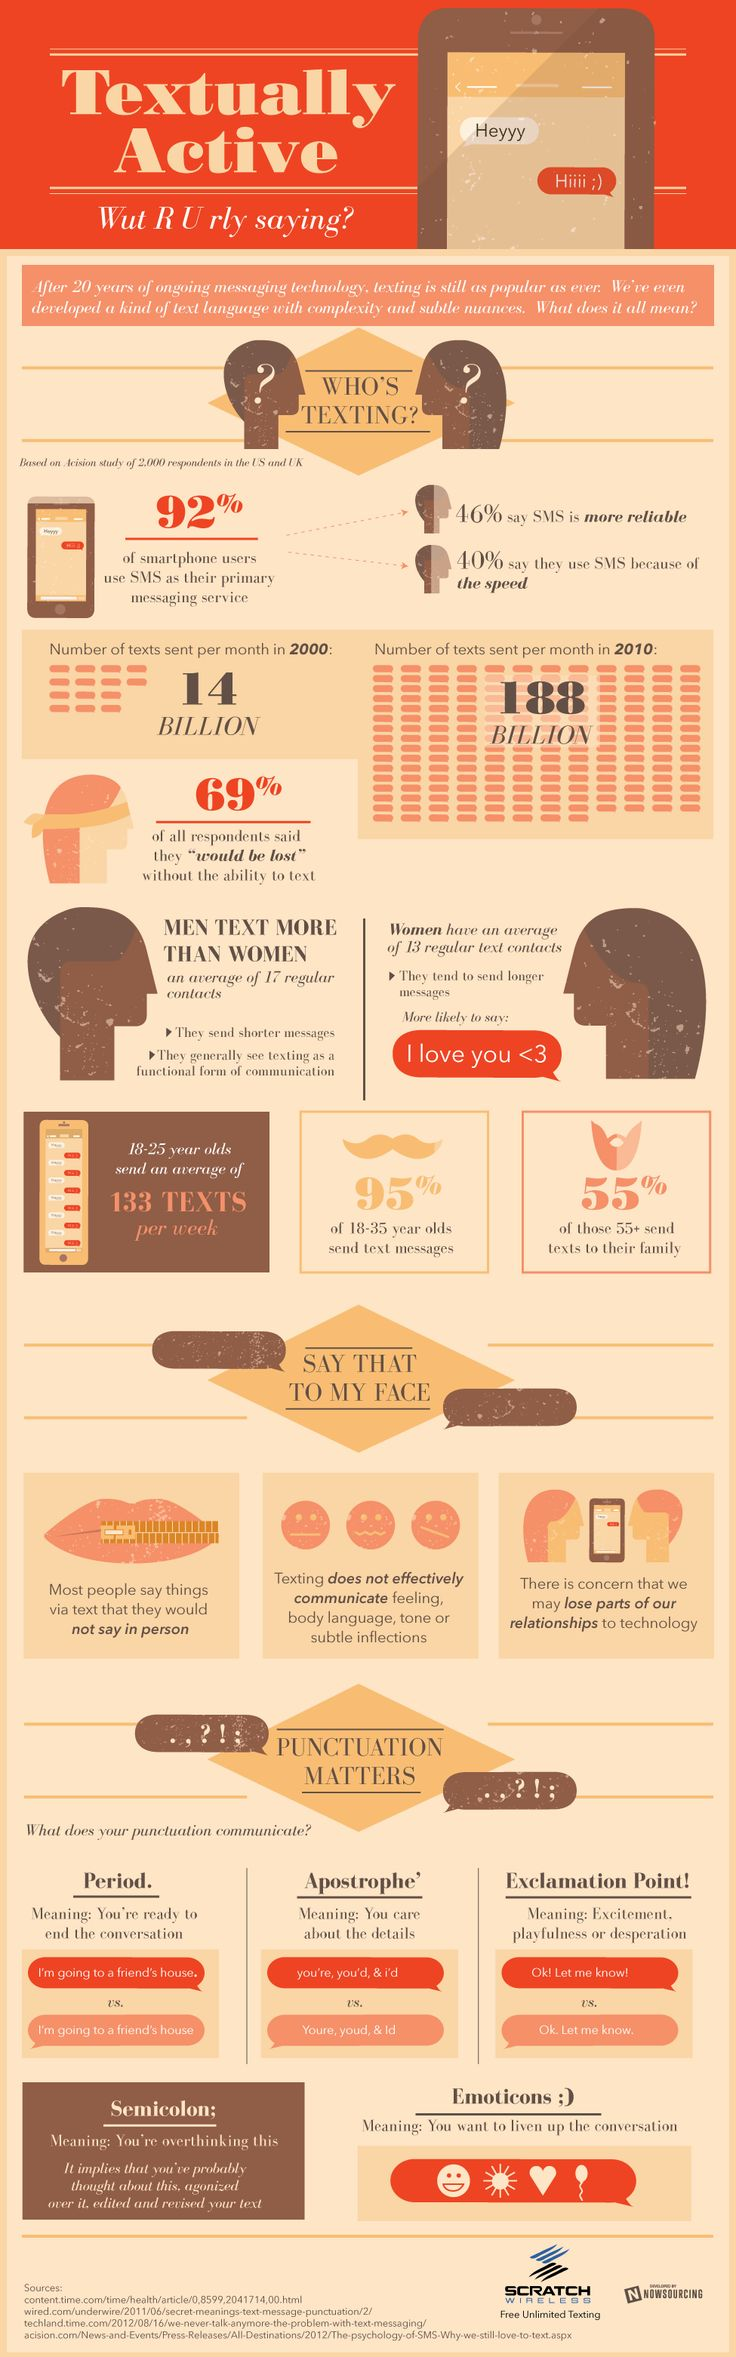 Are You Textually Active? [INFOGRAPHIC] - http://dashburst.com/infographic/texting-tips/